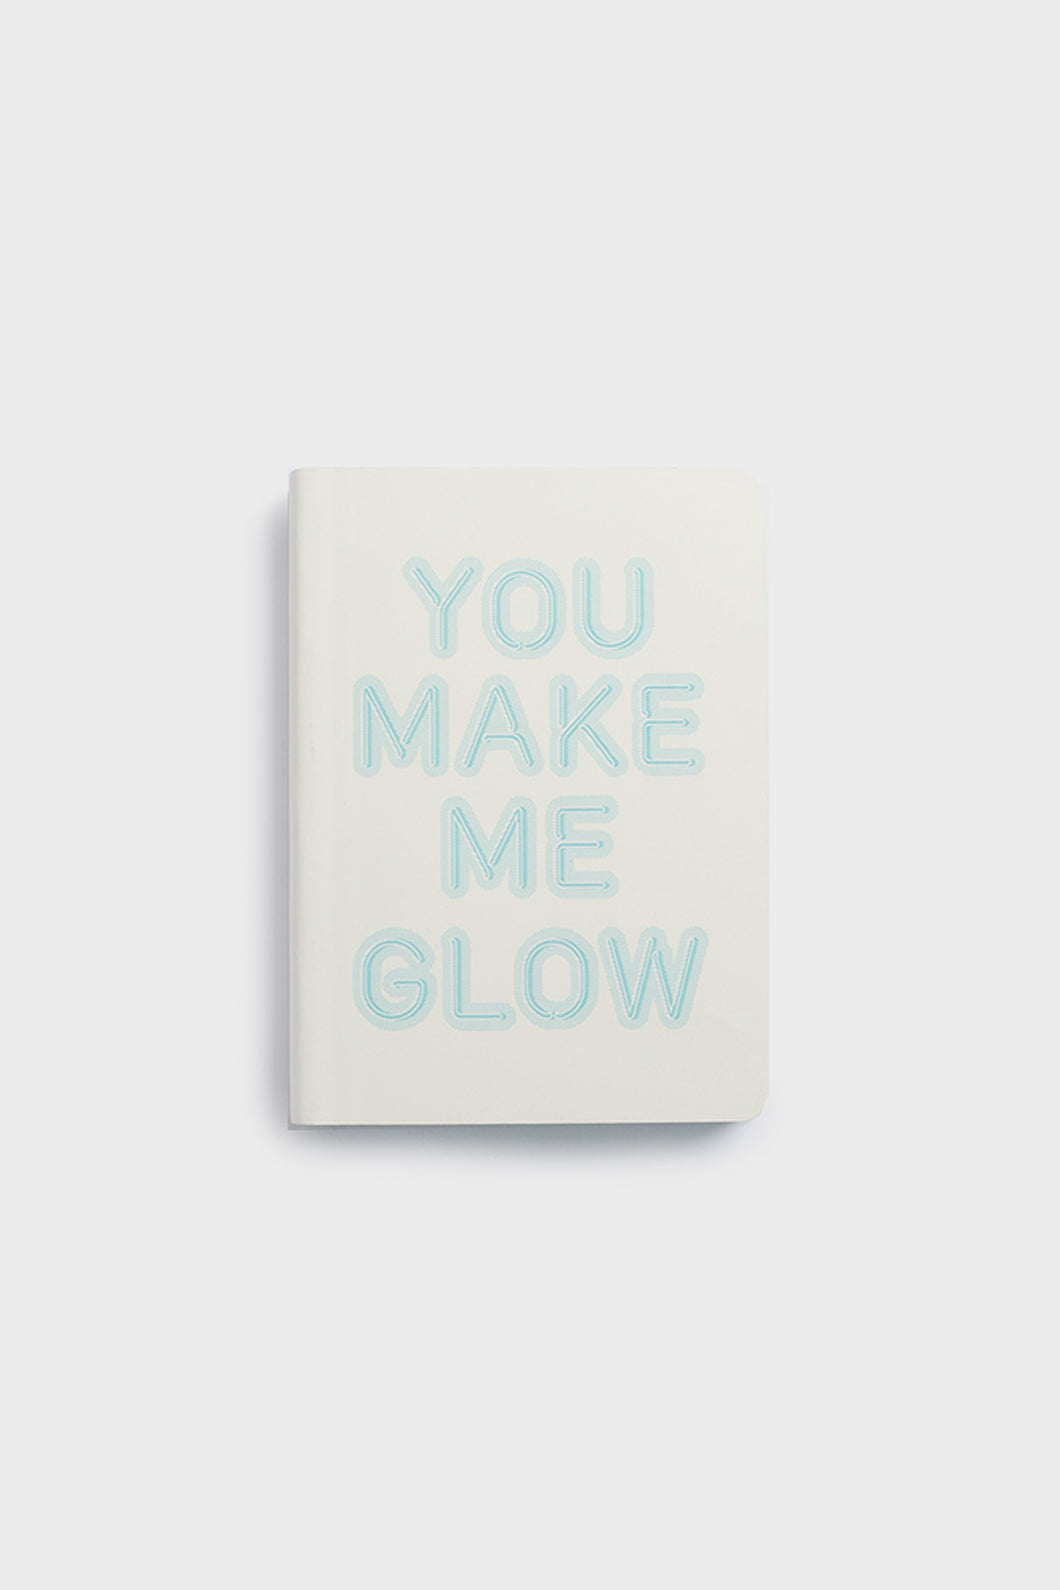 nuuna - Graphic Glow Notebook - Mini Dot Grid - Small - You Make Me Glow